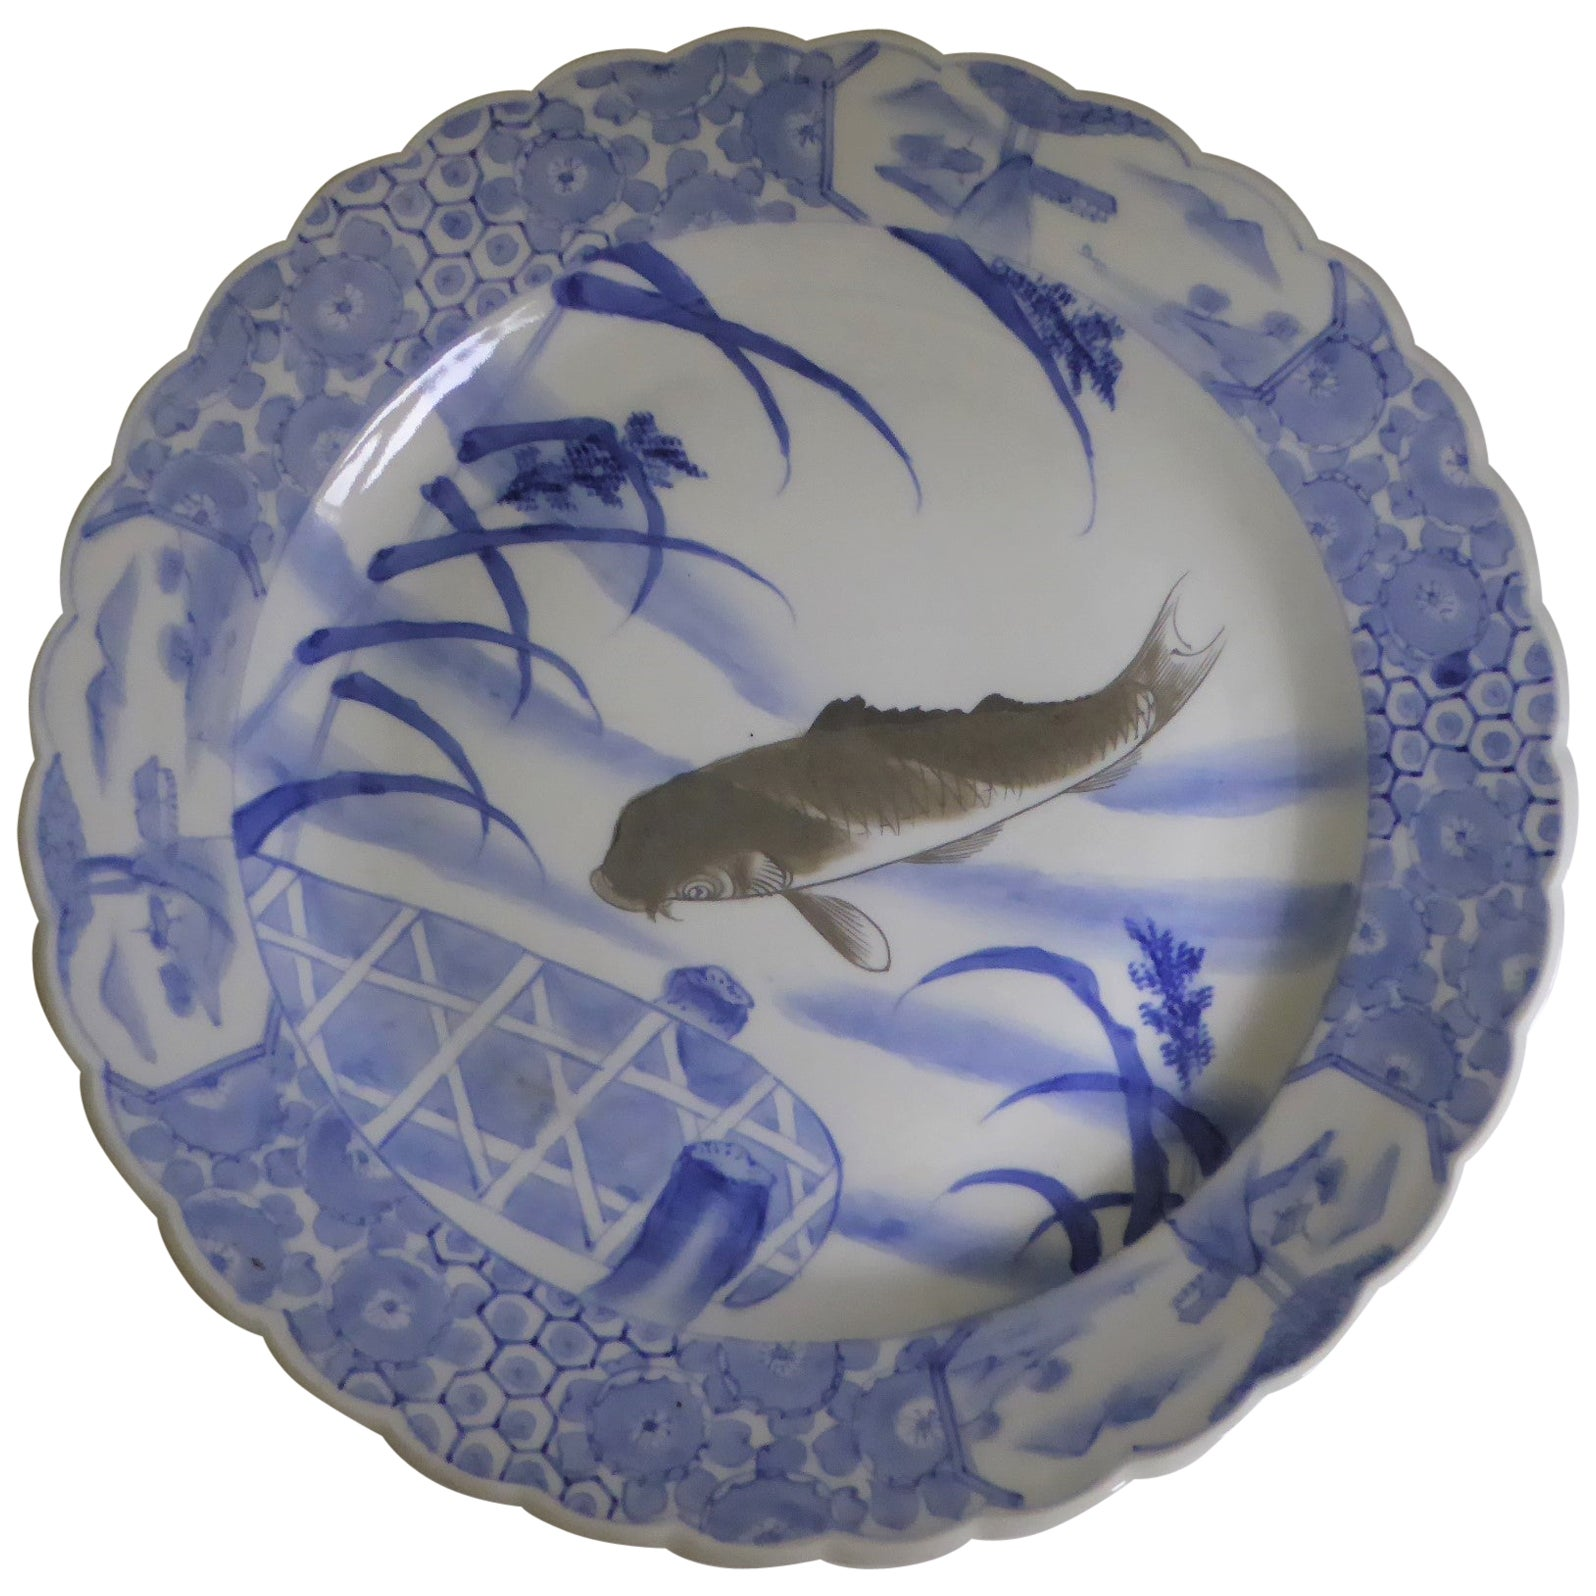 Blue White Japanese Arita Ware Scalloped Charger with Koi Fish